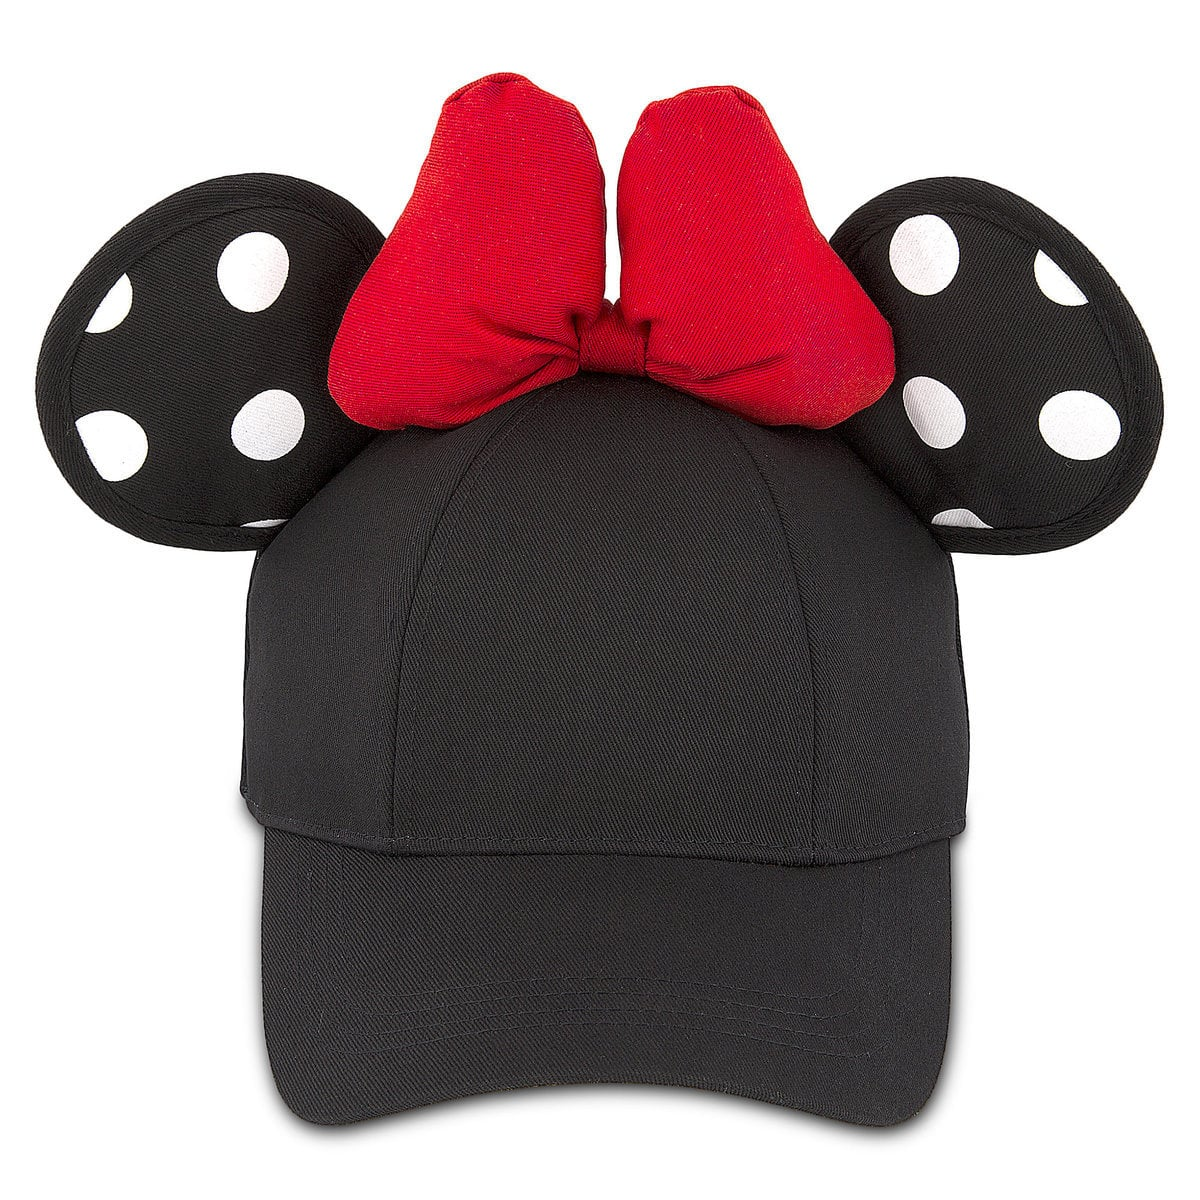 Disney Just Released a New Minnie Mouse Hat, and We Are So EXCITED!